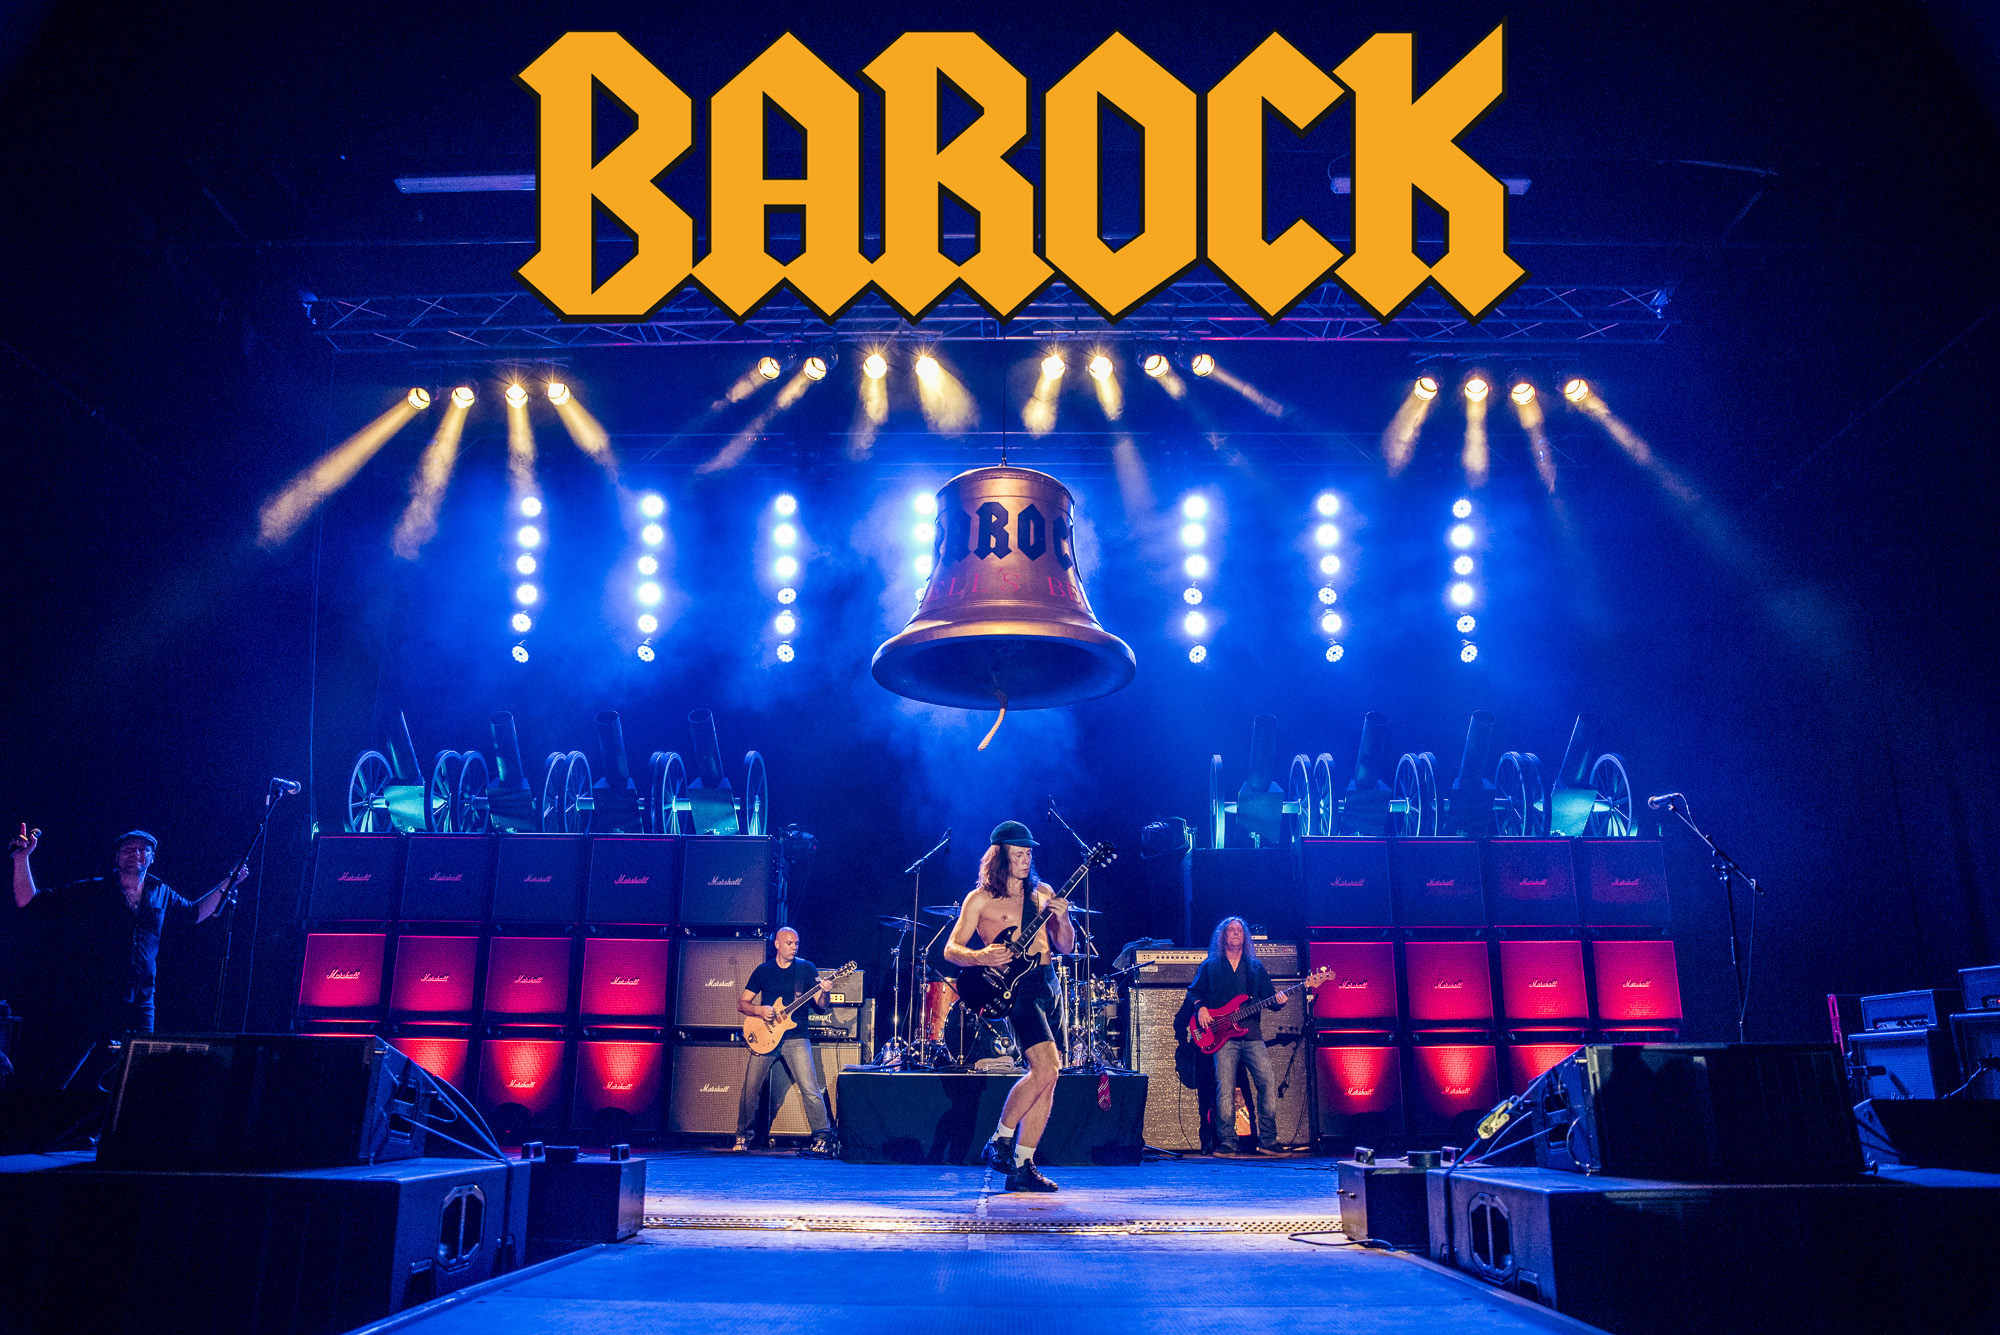 Preview: Barock